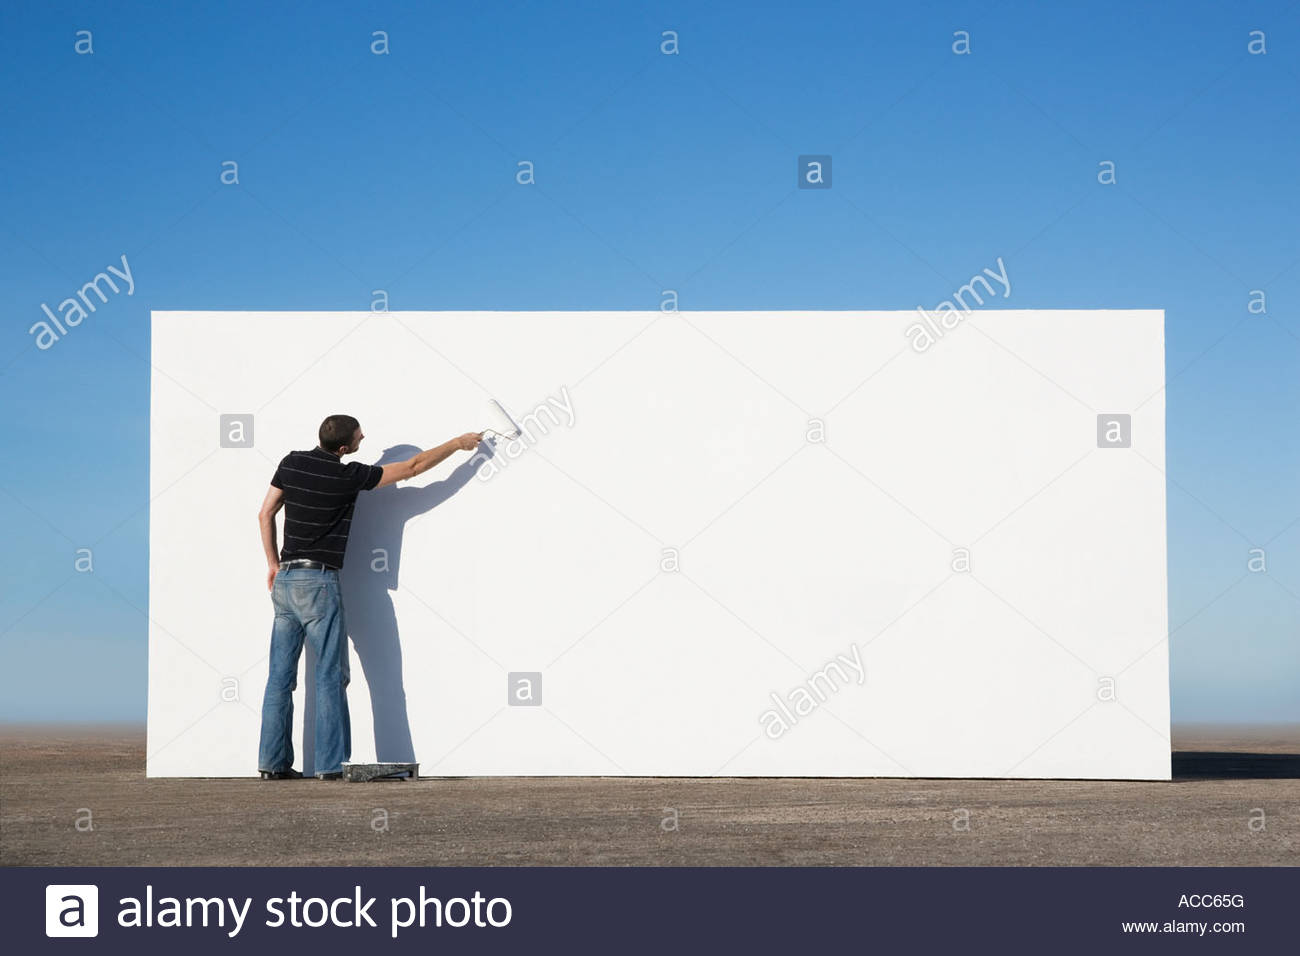 Man painting wall outdoors Photo Stock